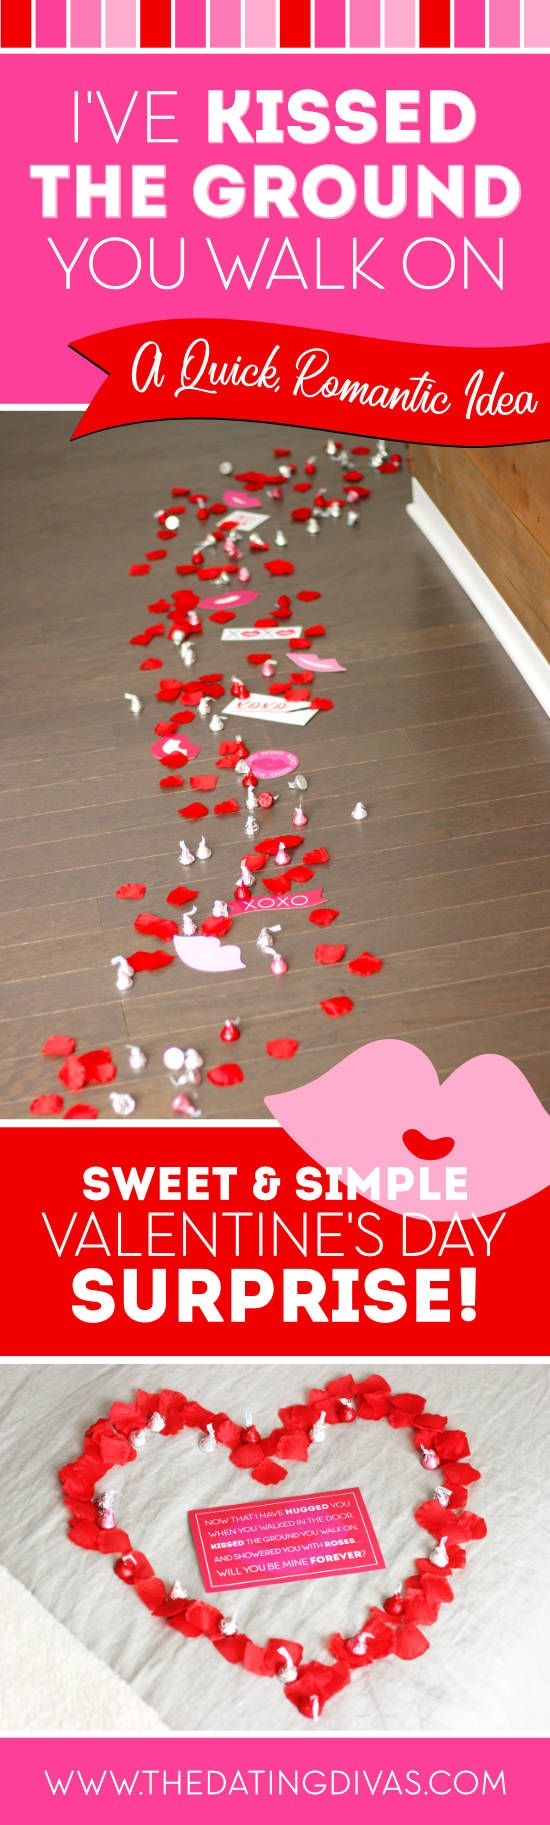 Kissed the Ground You Walk On Valentine's Day Surprise #romanticvalentines #vdayidea Fun V-day surprise idea from The Dating Divas #thedatingdivas